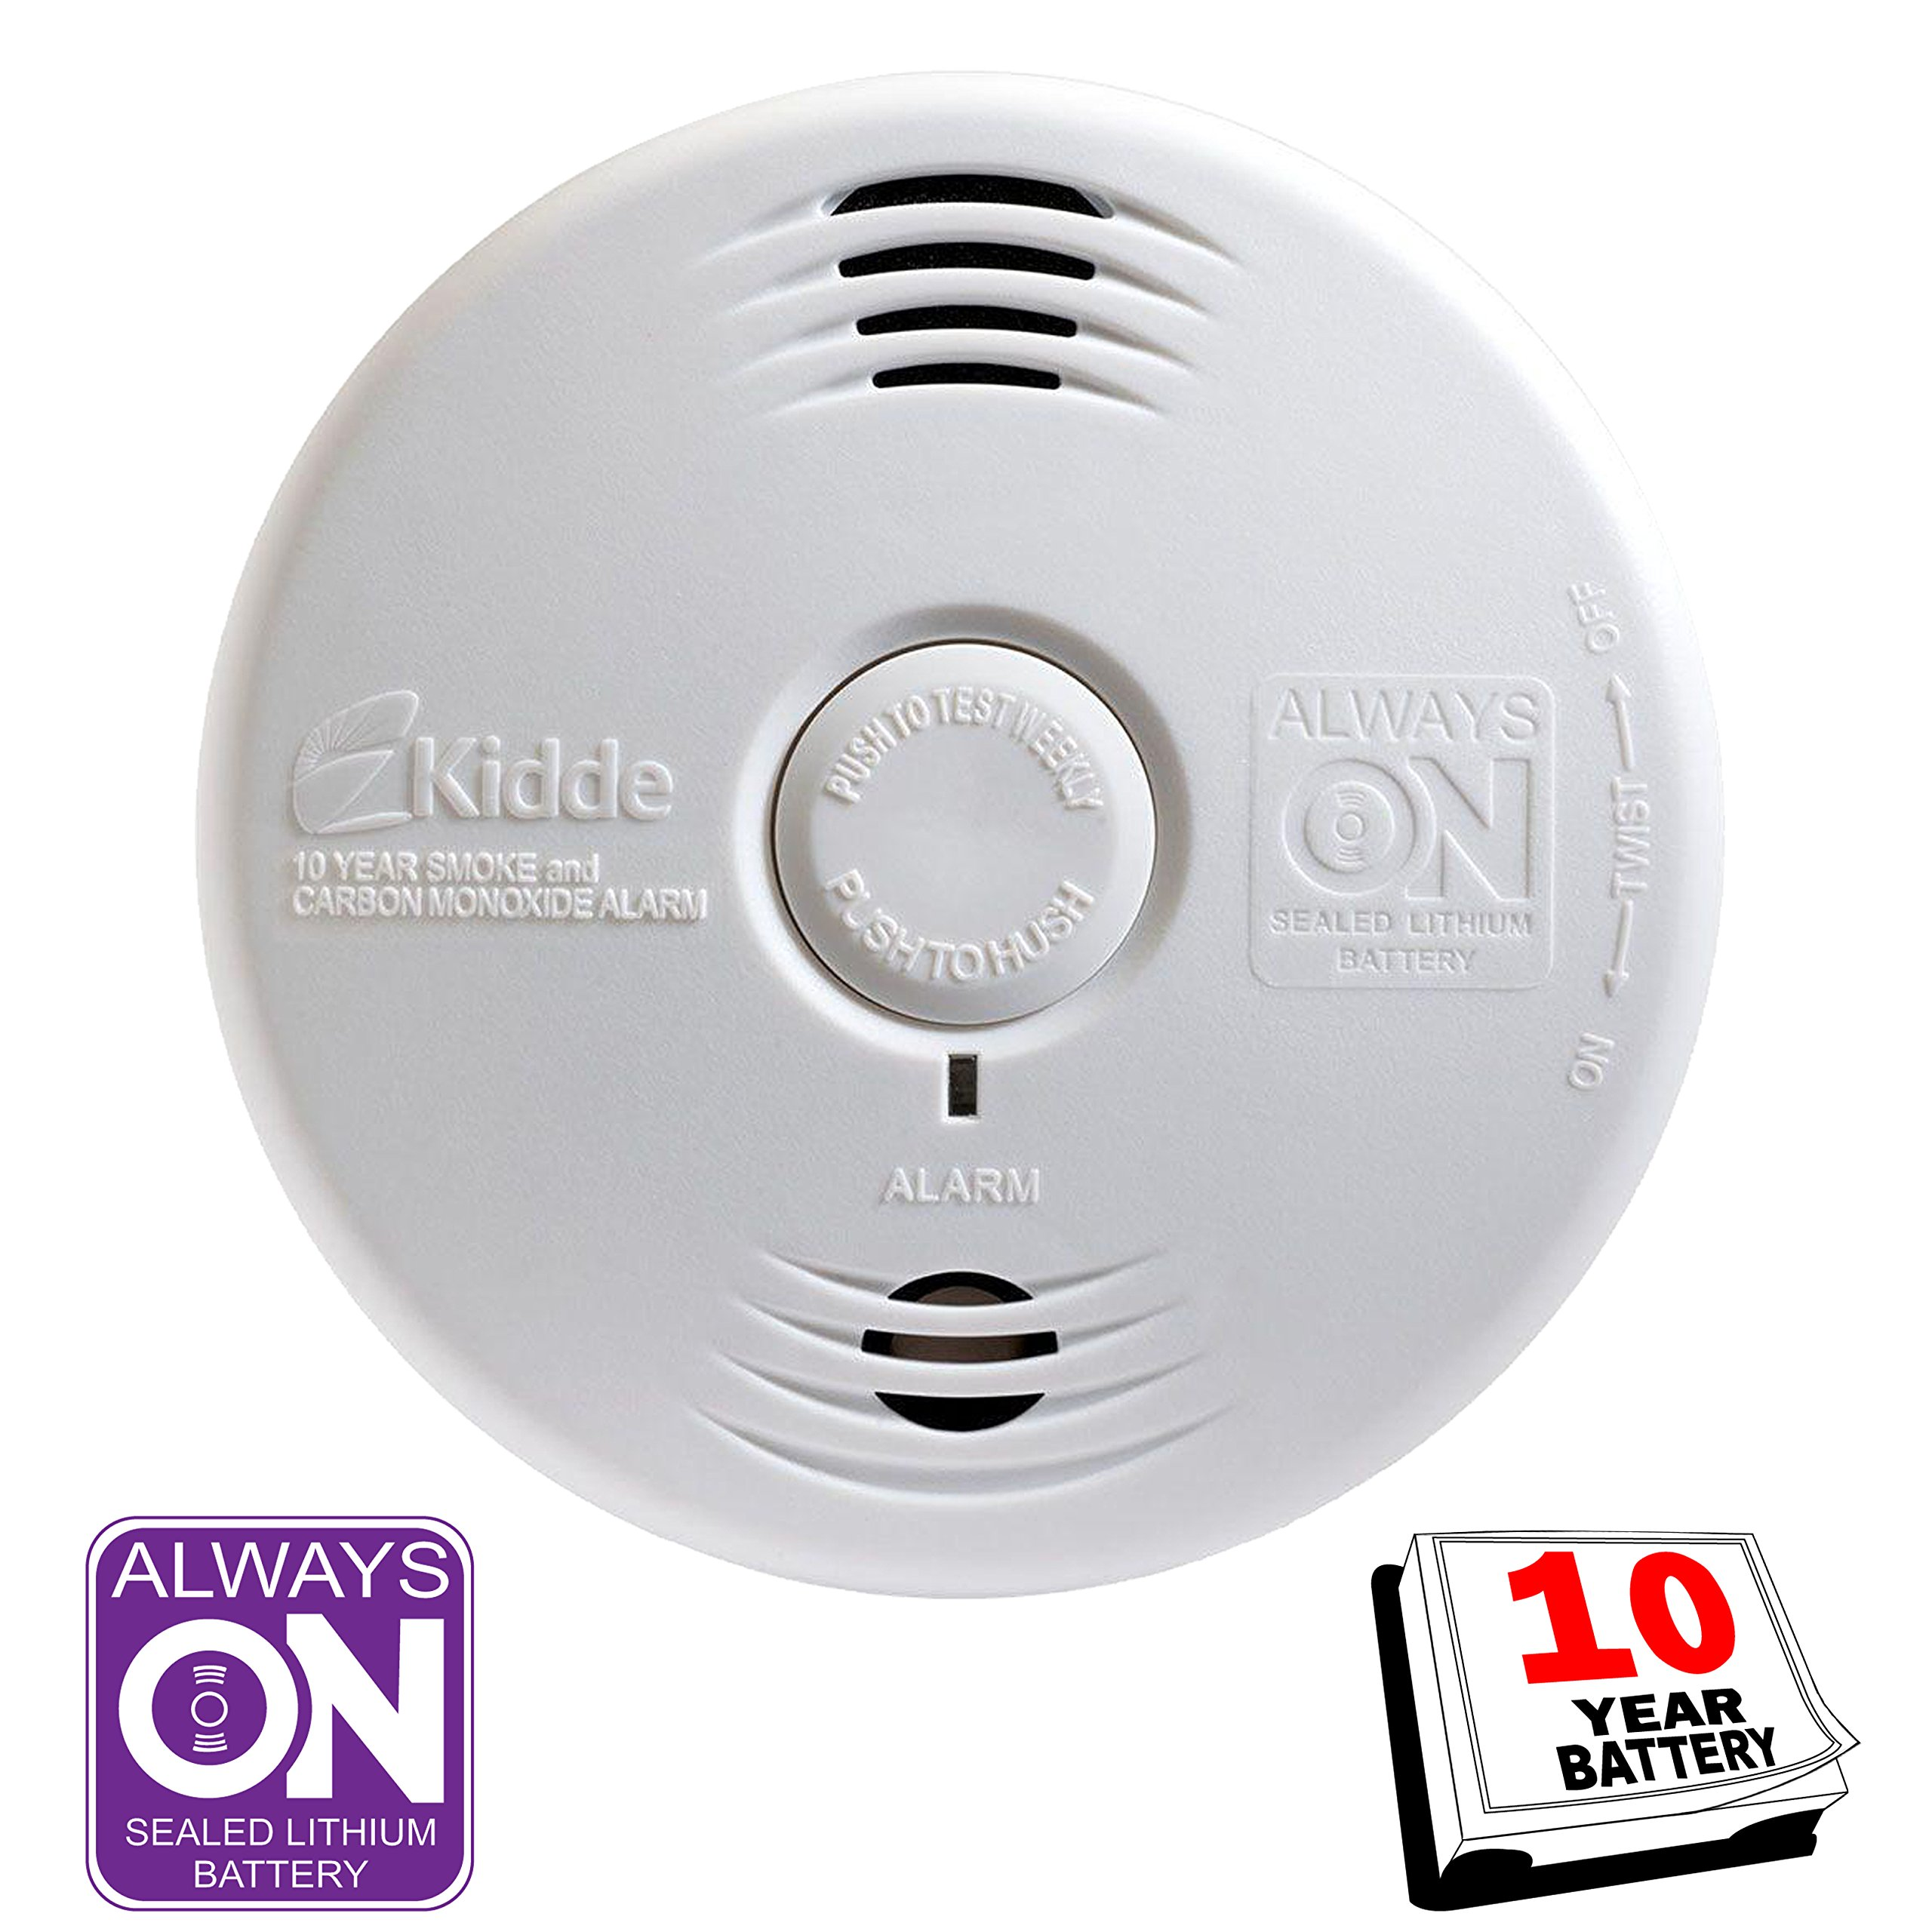 Kidde Smoke and Carbon Monoxide Detector Alarm with Voice Warning | Hardwired w/10 Year Lithium Battery Backup | Interconnectable | Model # i12010SCO by Kidde